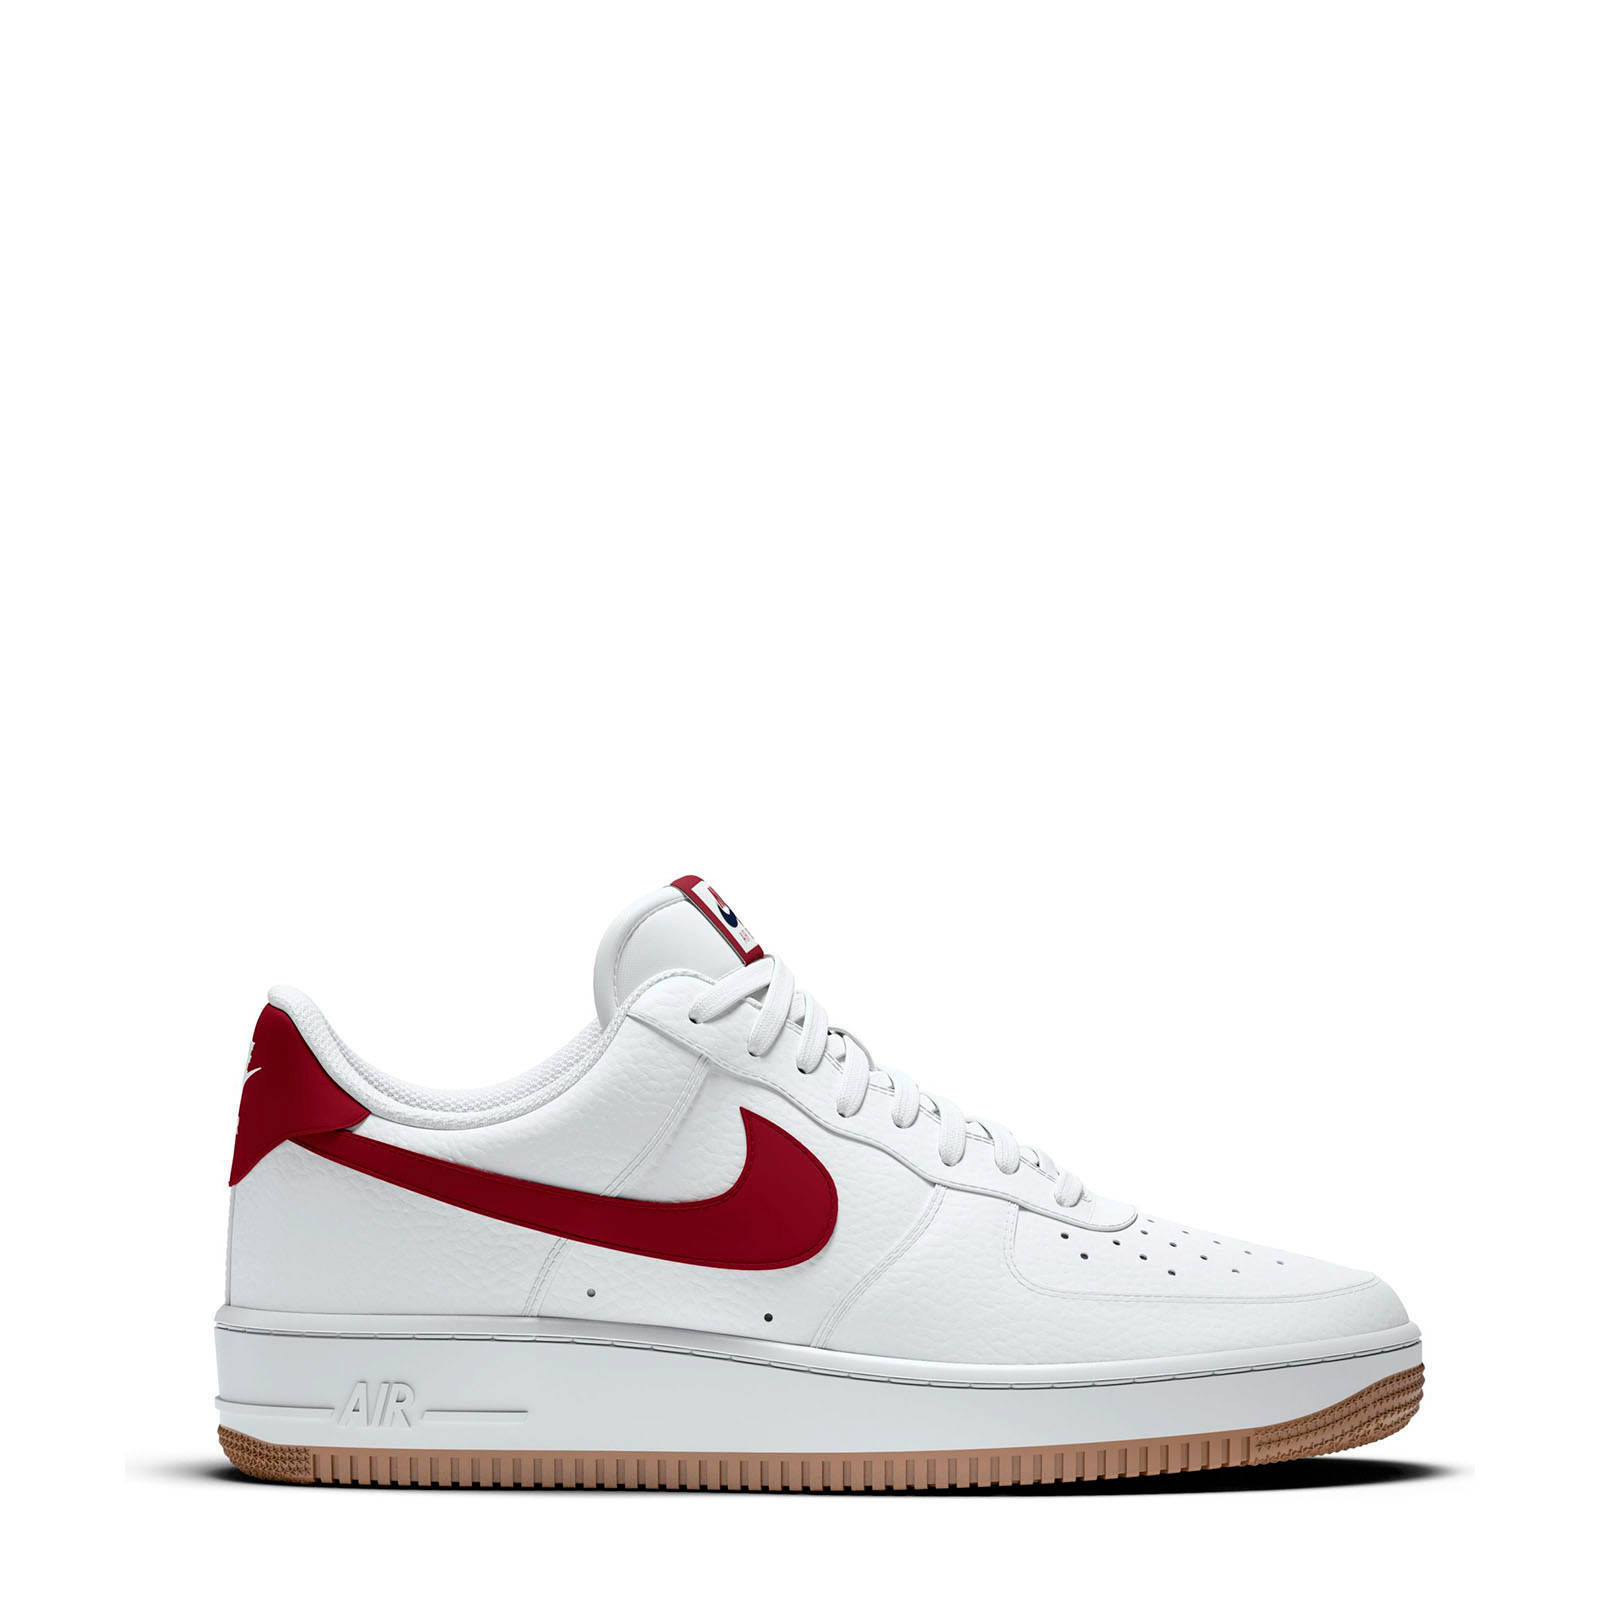 Nike Air Force 1 '07 sneakers wit/rood | wehkamp